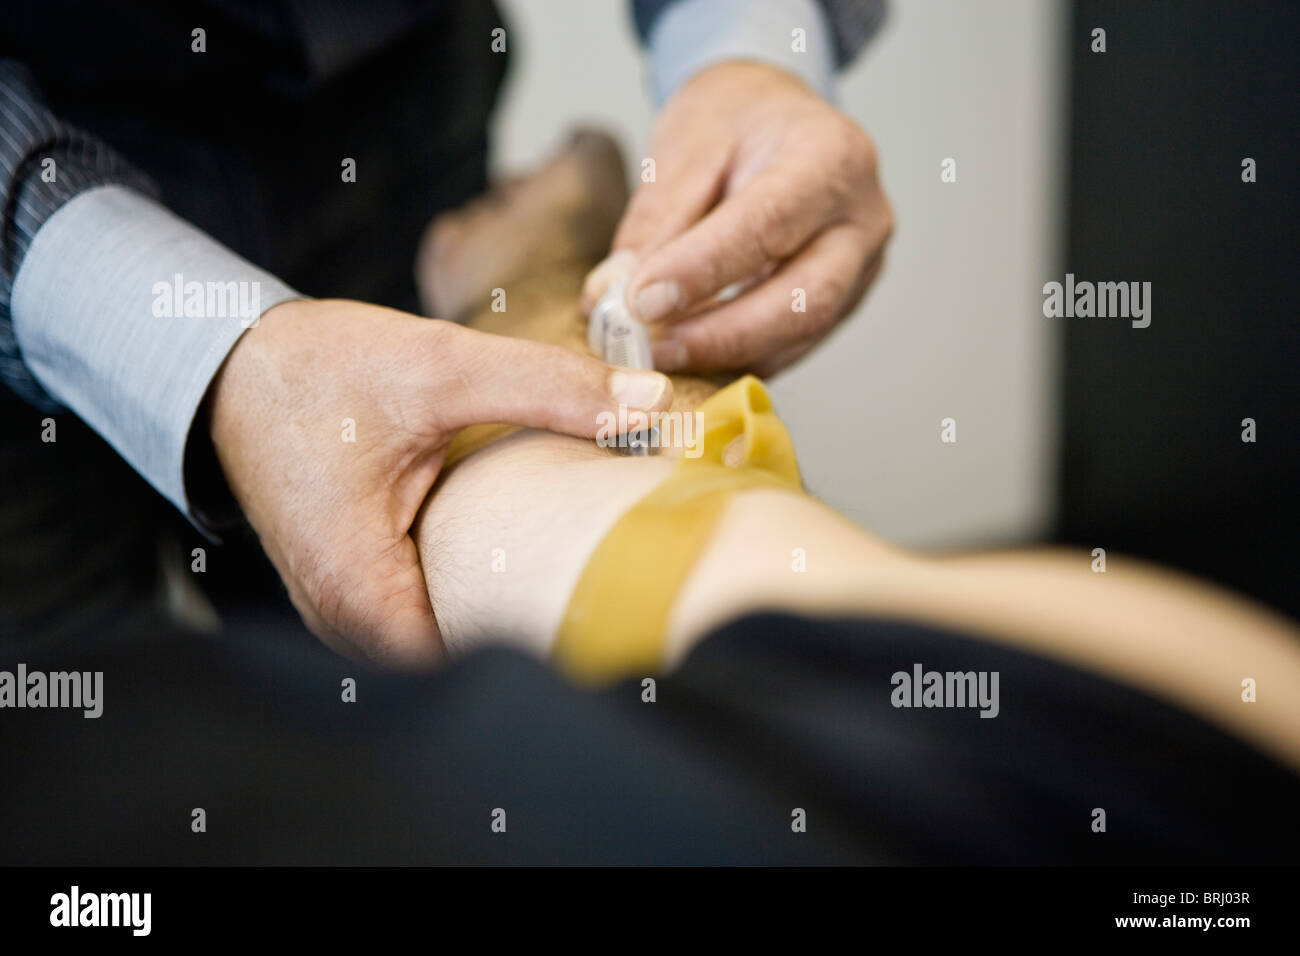 Doctor giving patient an injection, cropped - Stock Image